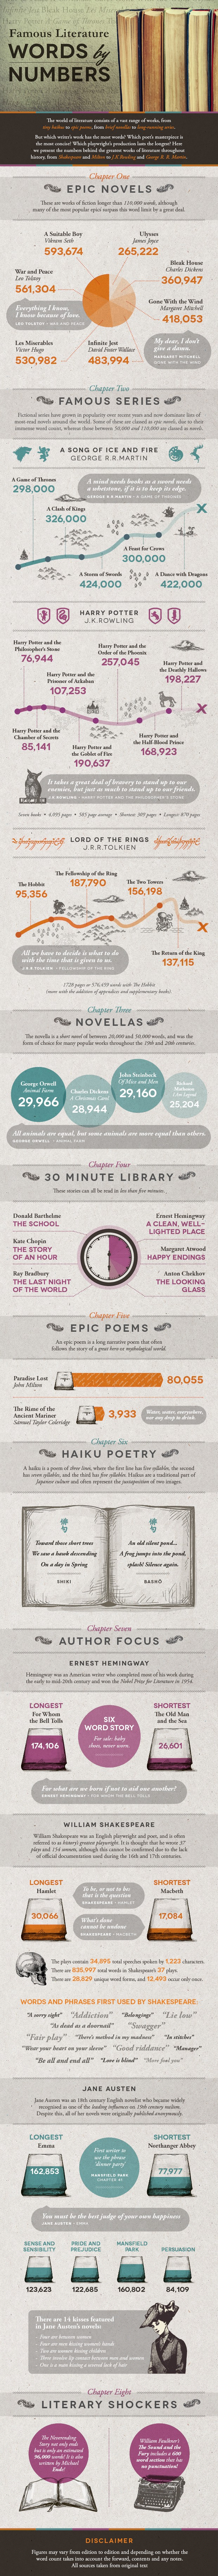 infographic word counts of famous books electric literature word counts of novels